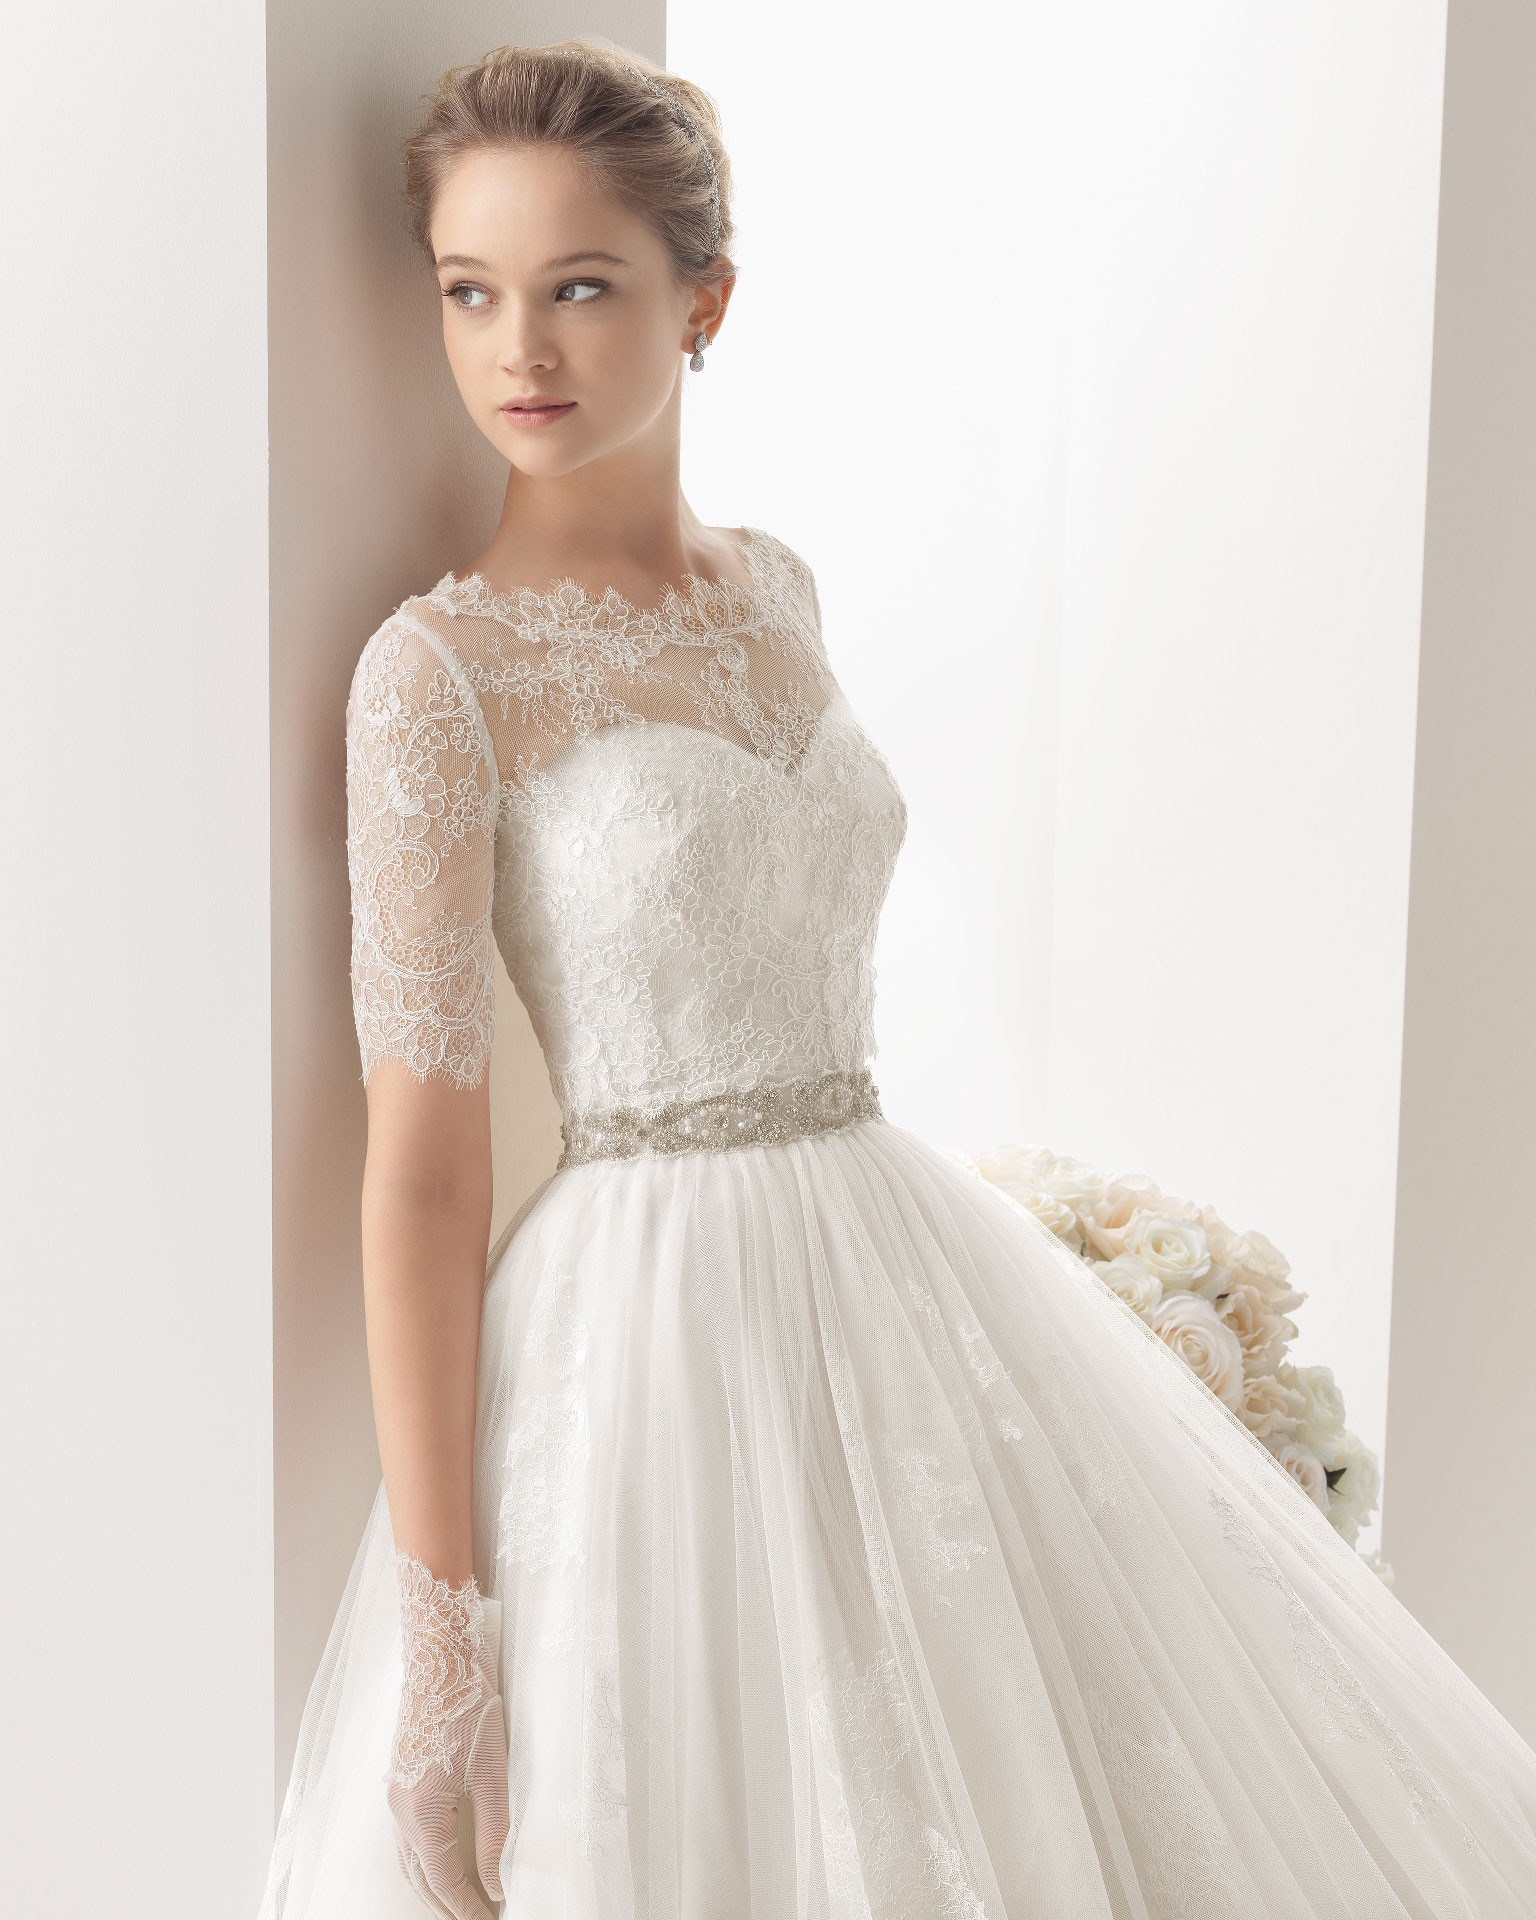 fabulous wedding dresses collection for brides